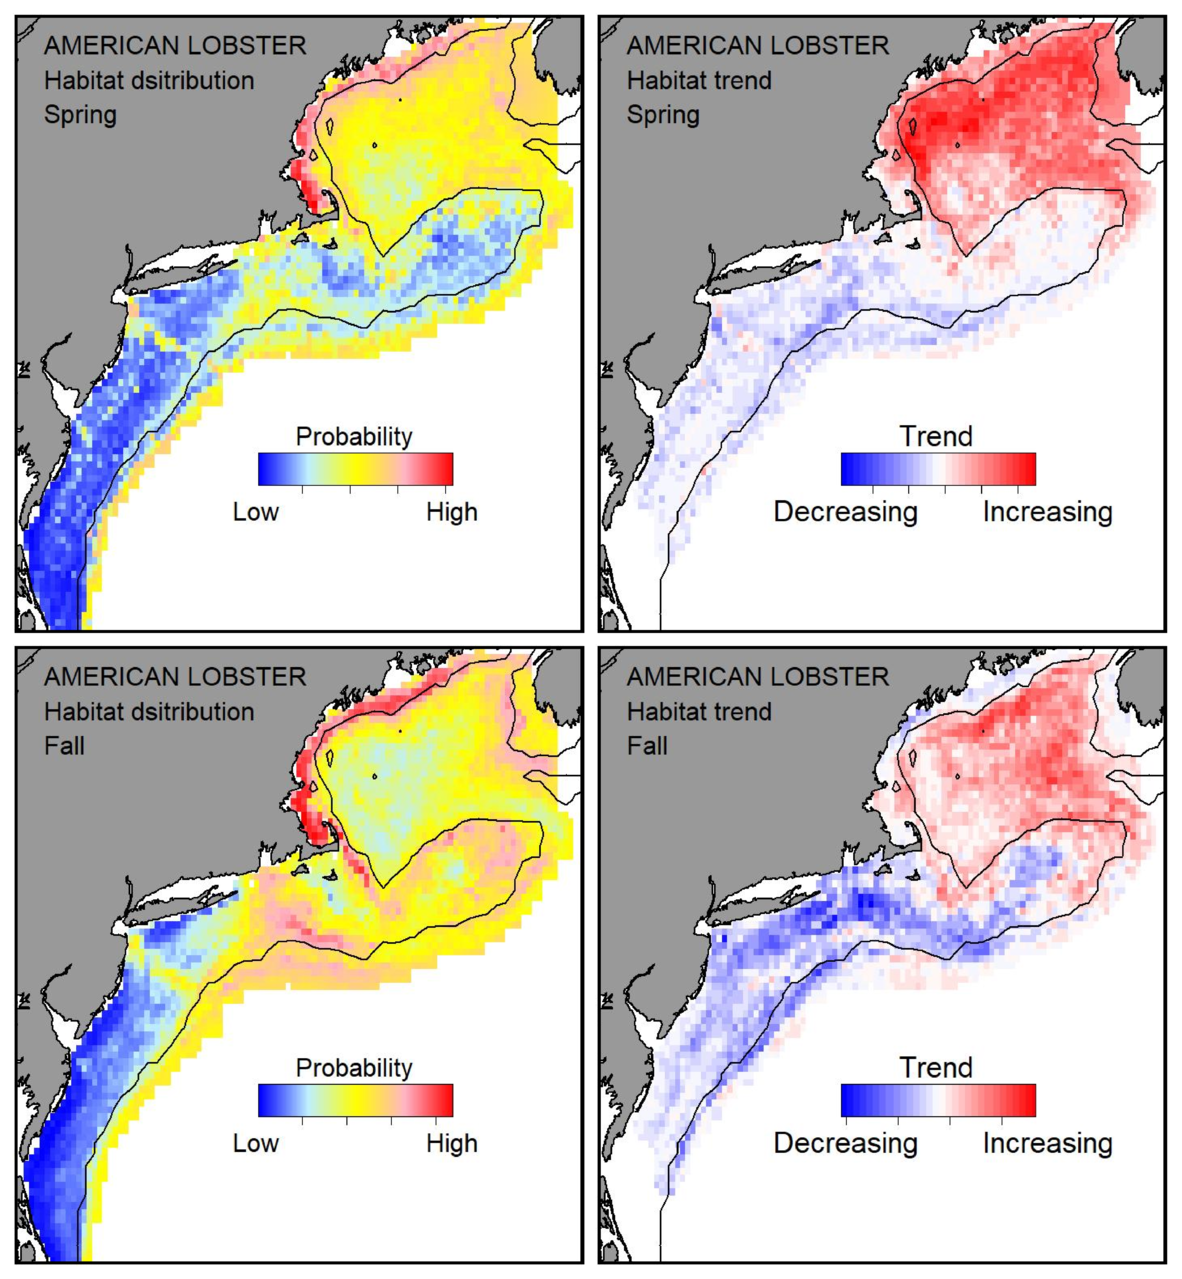 Probable habitat distribution for American lobster showing the highest concentration and increasing trend in the Gulf of Maine during the spring. Bottom row: Probable habitat distribution for American lobster showing the highest concentration and increasing trend in the Gulf of Maine during the fall.